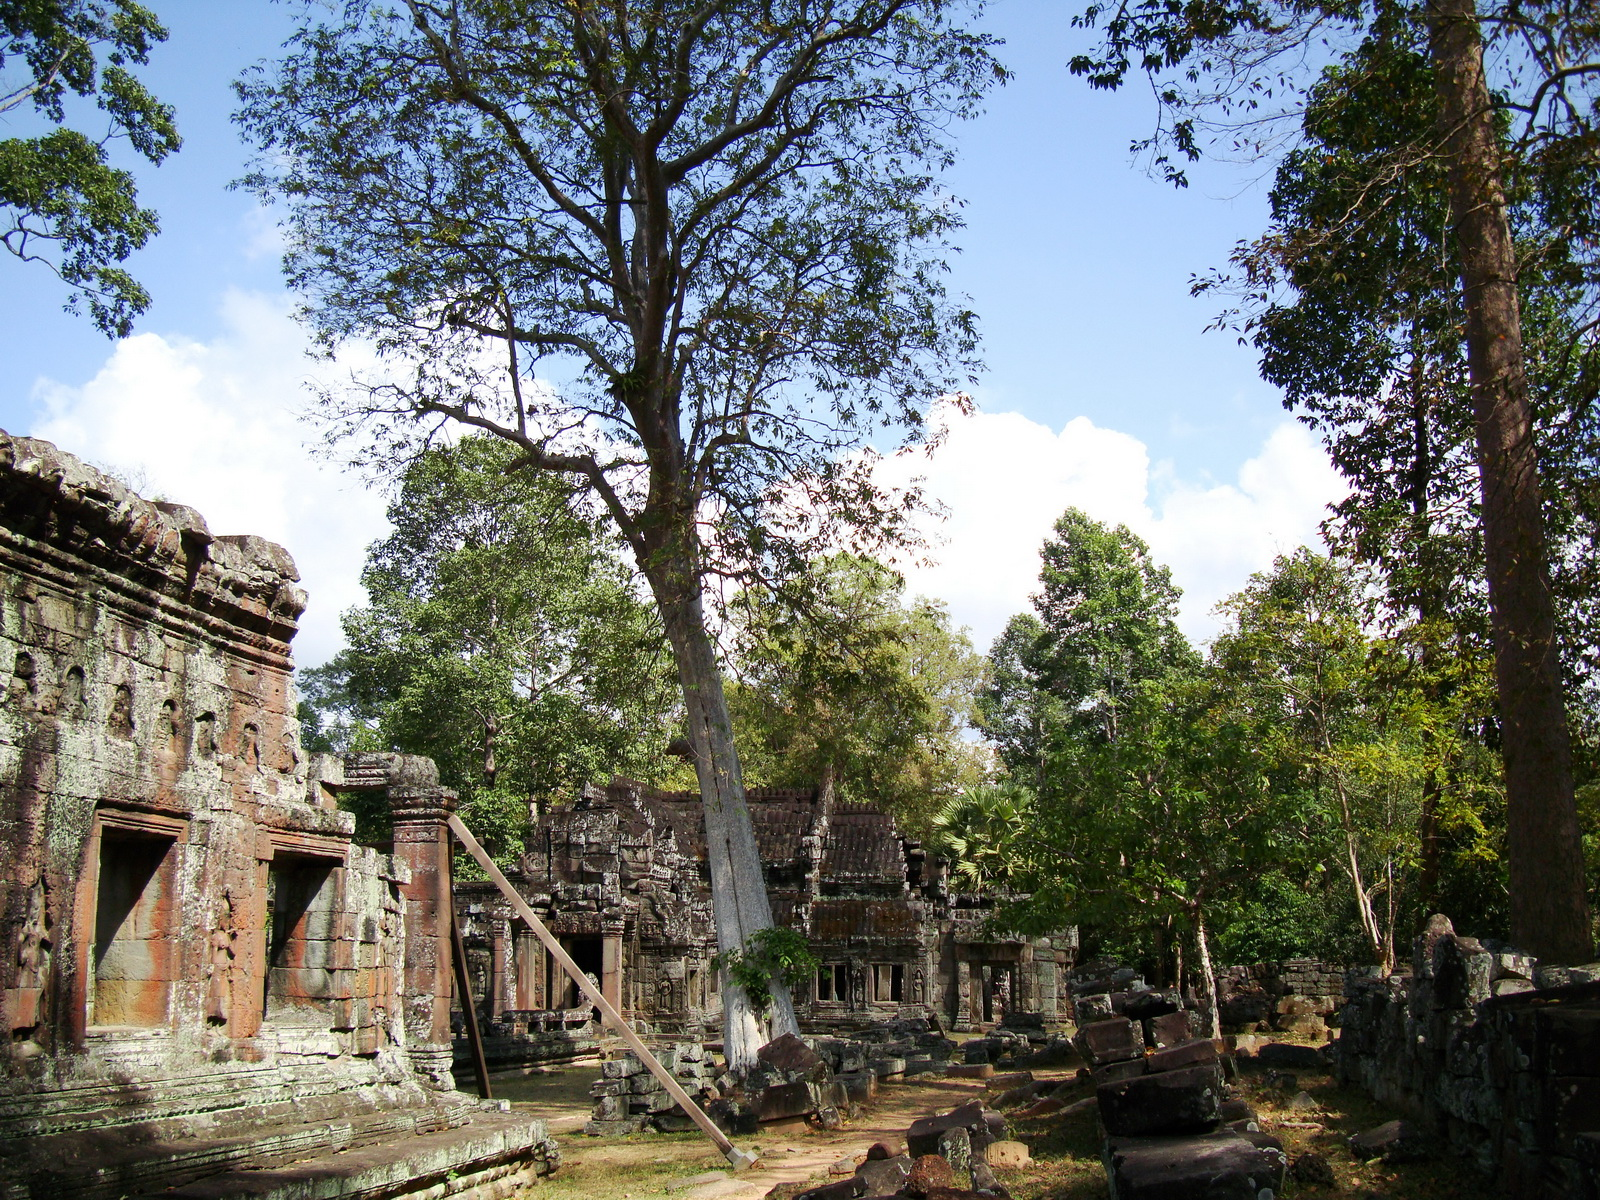 D Banteay Kdei Temple central sanctuary enclosure 09